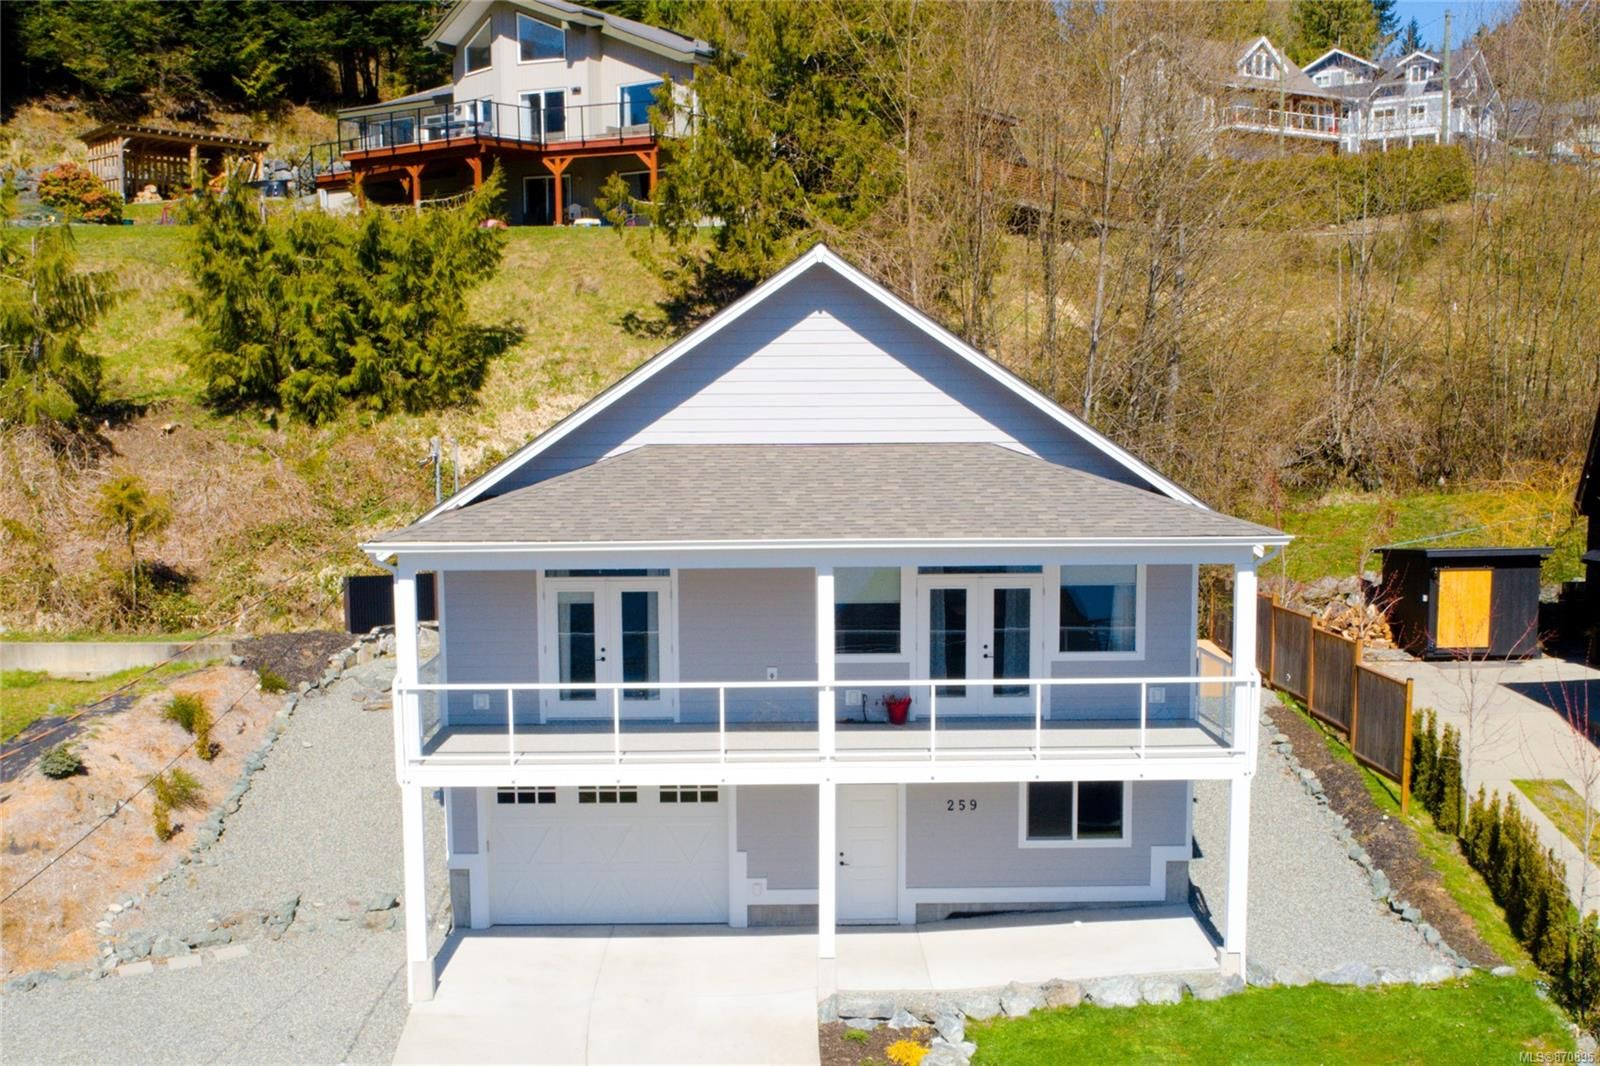 Main Photo: 259 North Shore Rd in : Du Lake Cowichan House for sale (Duncan)  : MLS®# 870895